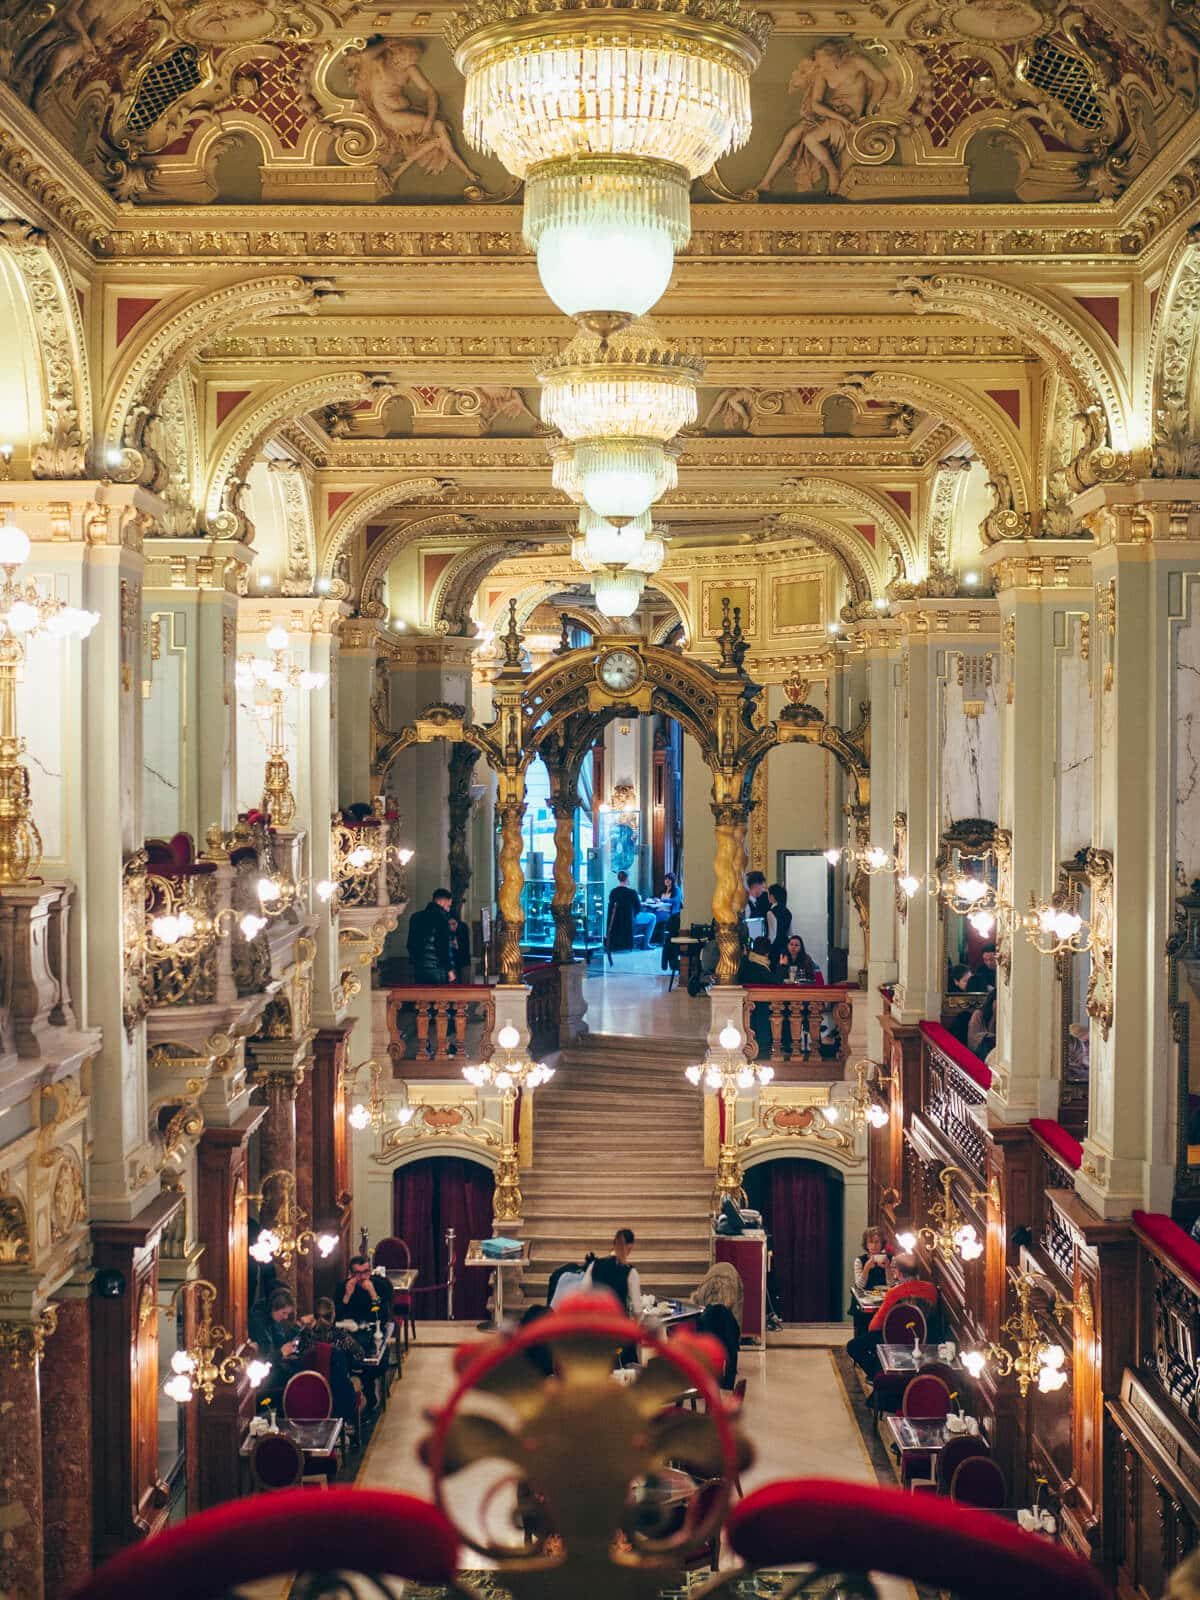 Budapest Instagrammable Places - The most beautiful cafe in the world